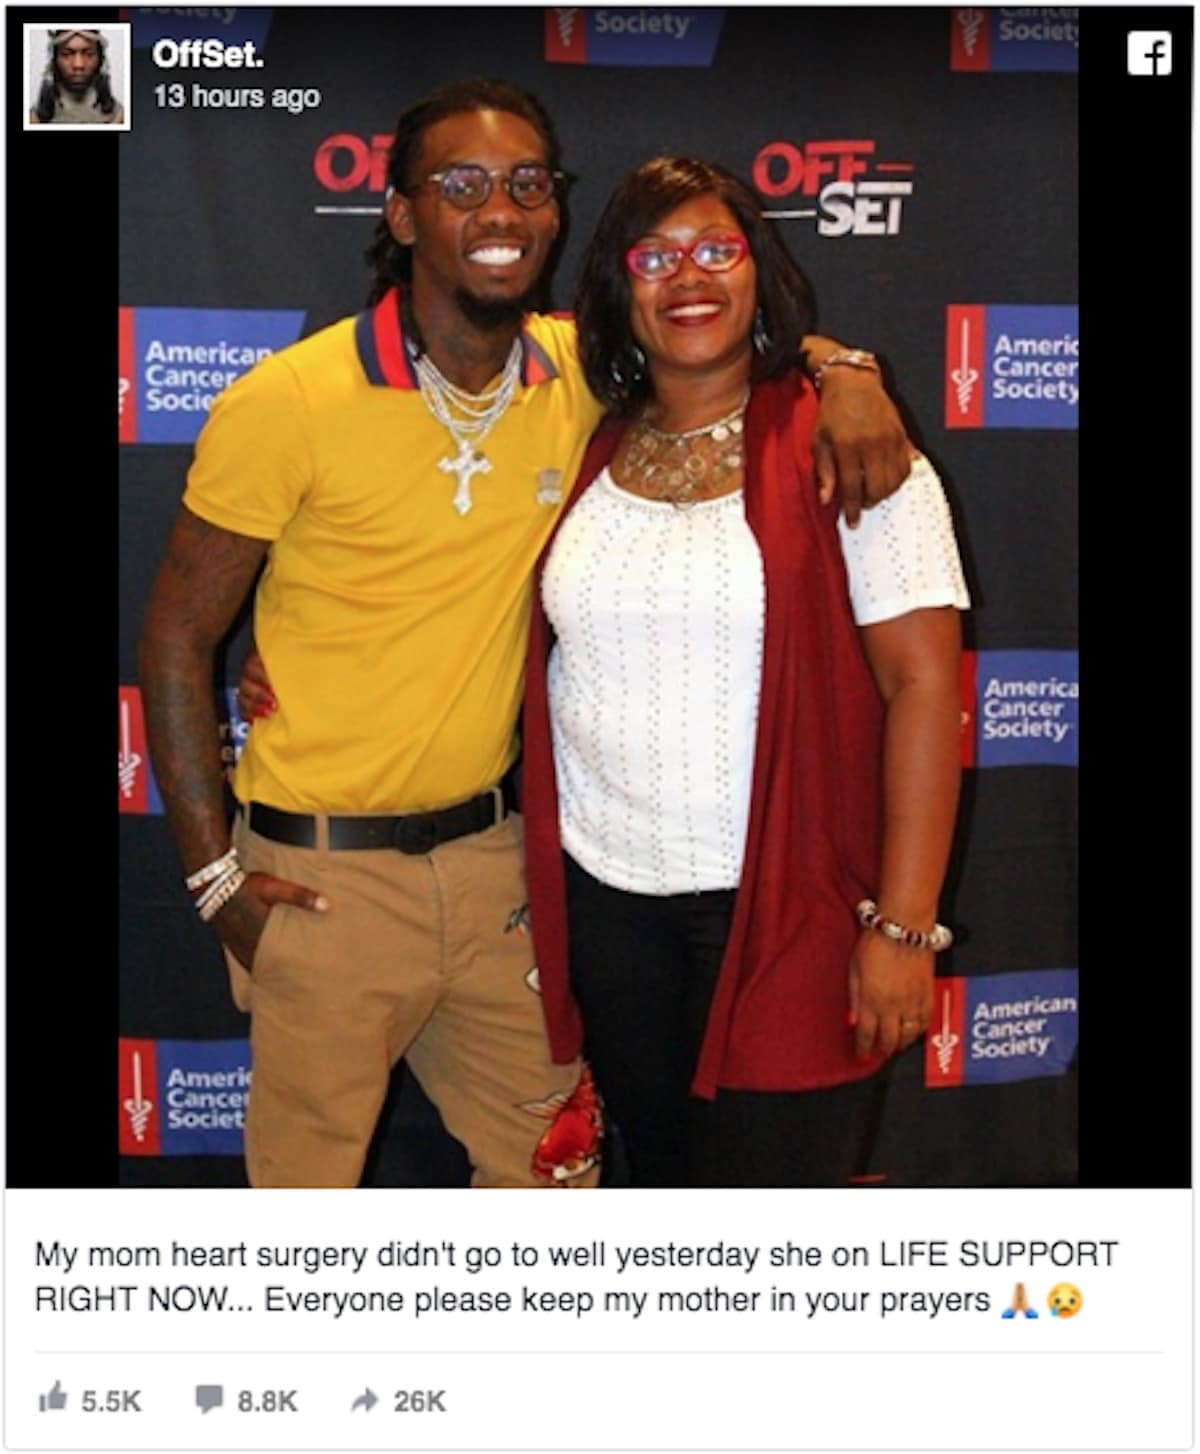 Fake post claiming Offset's mom was on life support